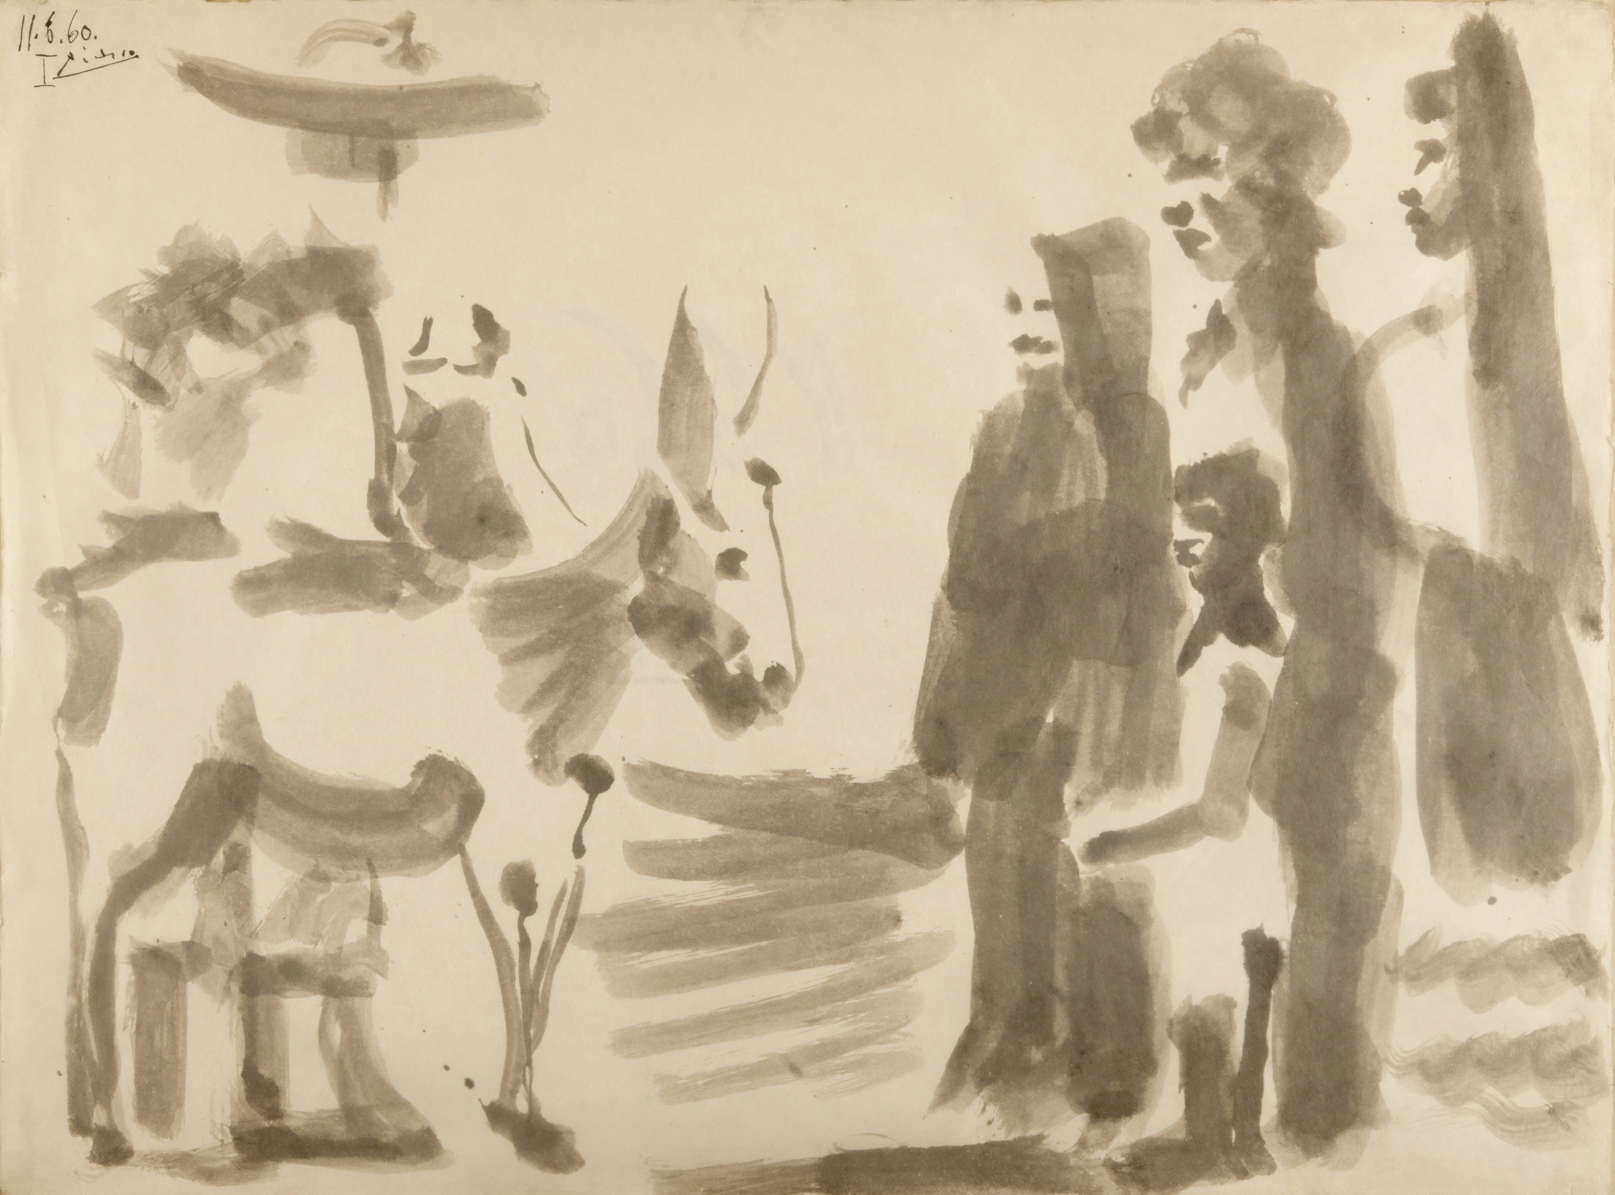 Pablo Picasso   Scène Villageoise  1960 Signed Picasso and dated 11.6.60 I Inkwash 57 x 76,5 cm